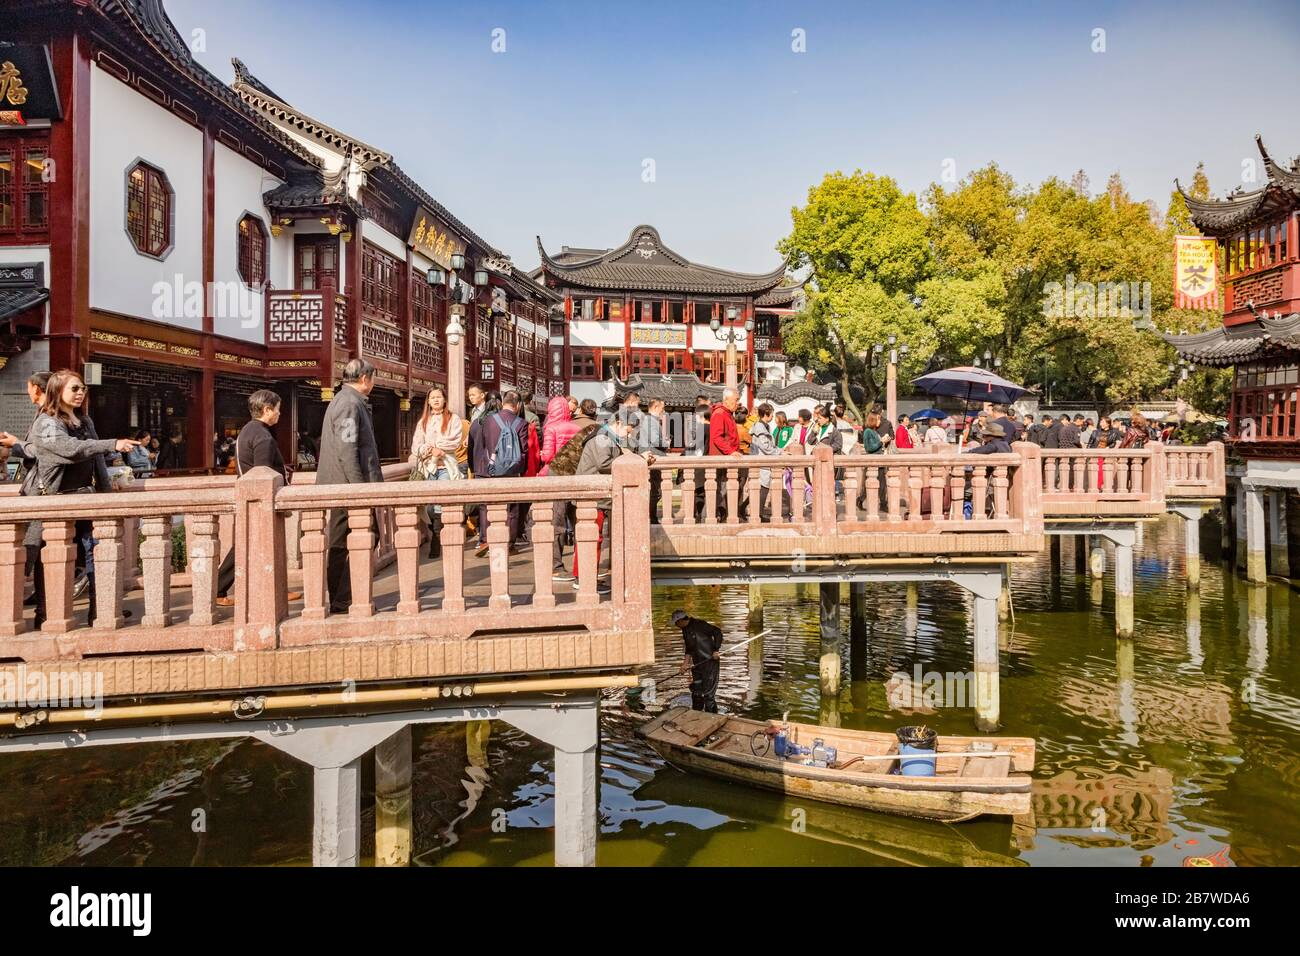 29 November 2018 - Shanghai, China  -  Crowds of visitors on the Nine Turn Bridge in the Yu Garden area of the Old Town, Shanghai. Stock Photo